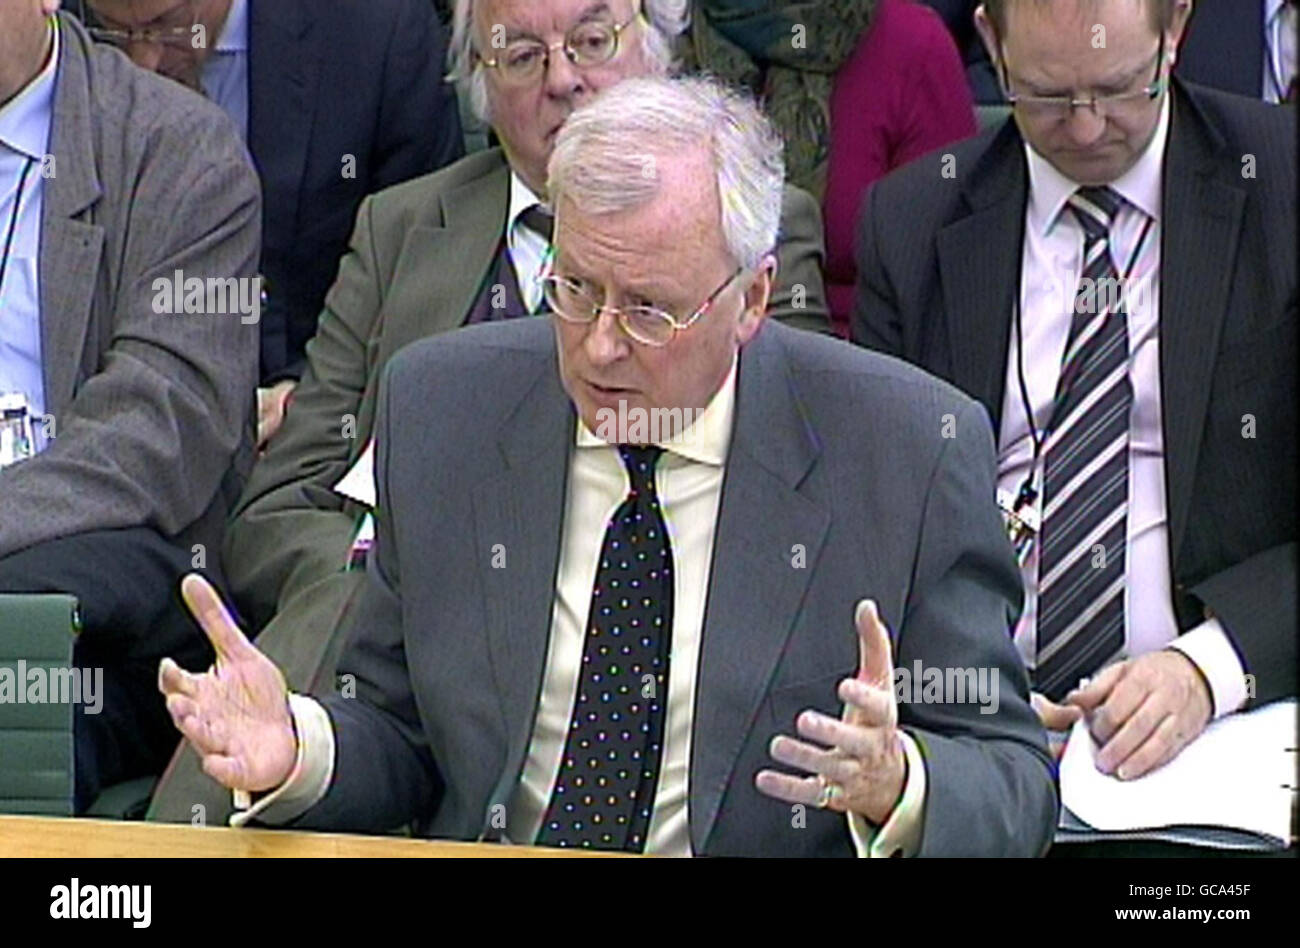 Treasury Committee inquiry into financial institutions - Stock Image